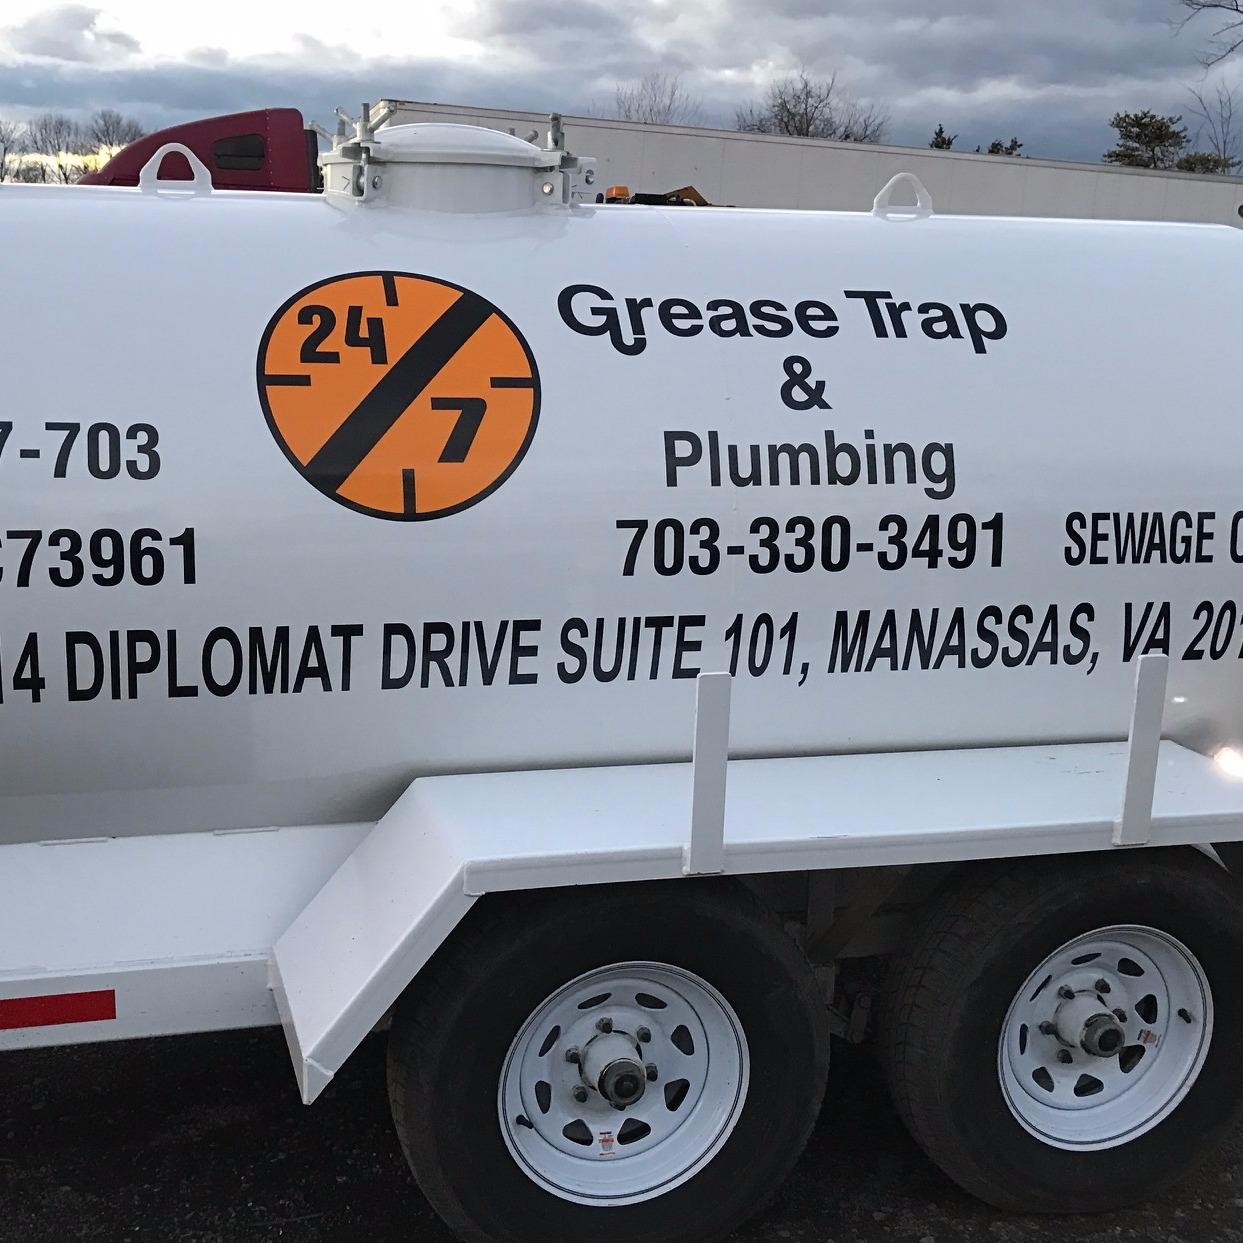 24/7 Grease Trap and Plumbing Inc